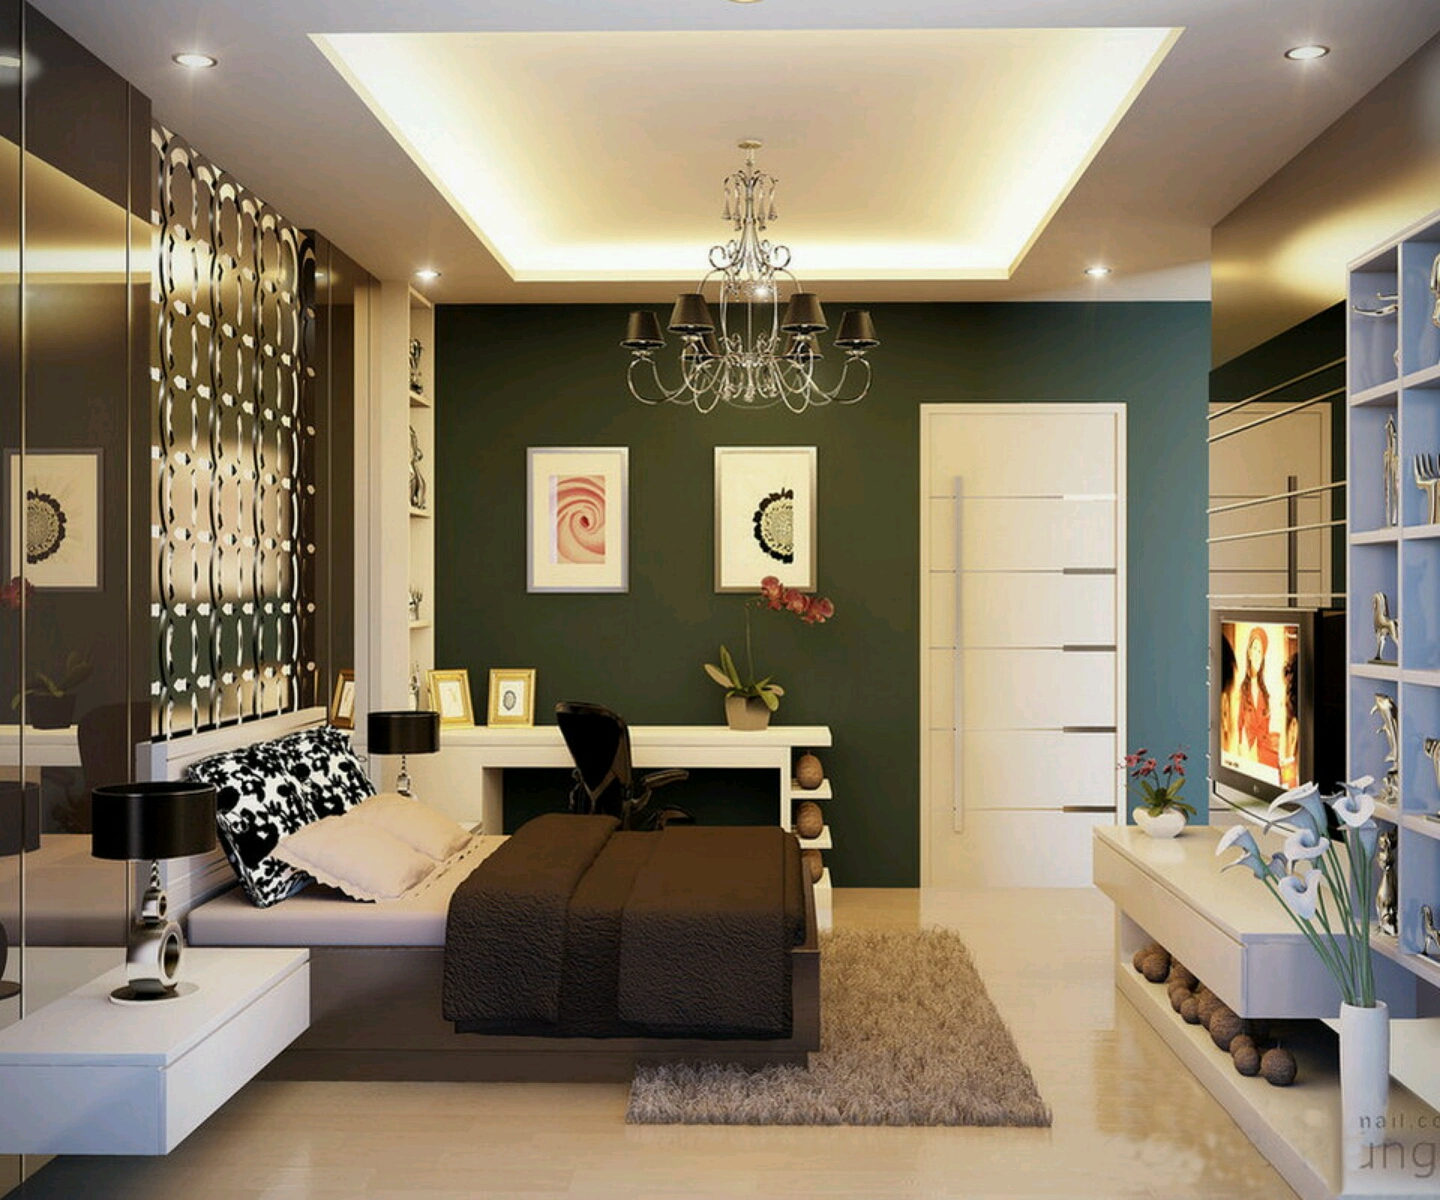 New home designs latest modern bedrooms designs best ideas for Best home designs 2013